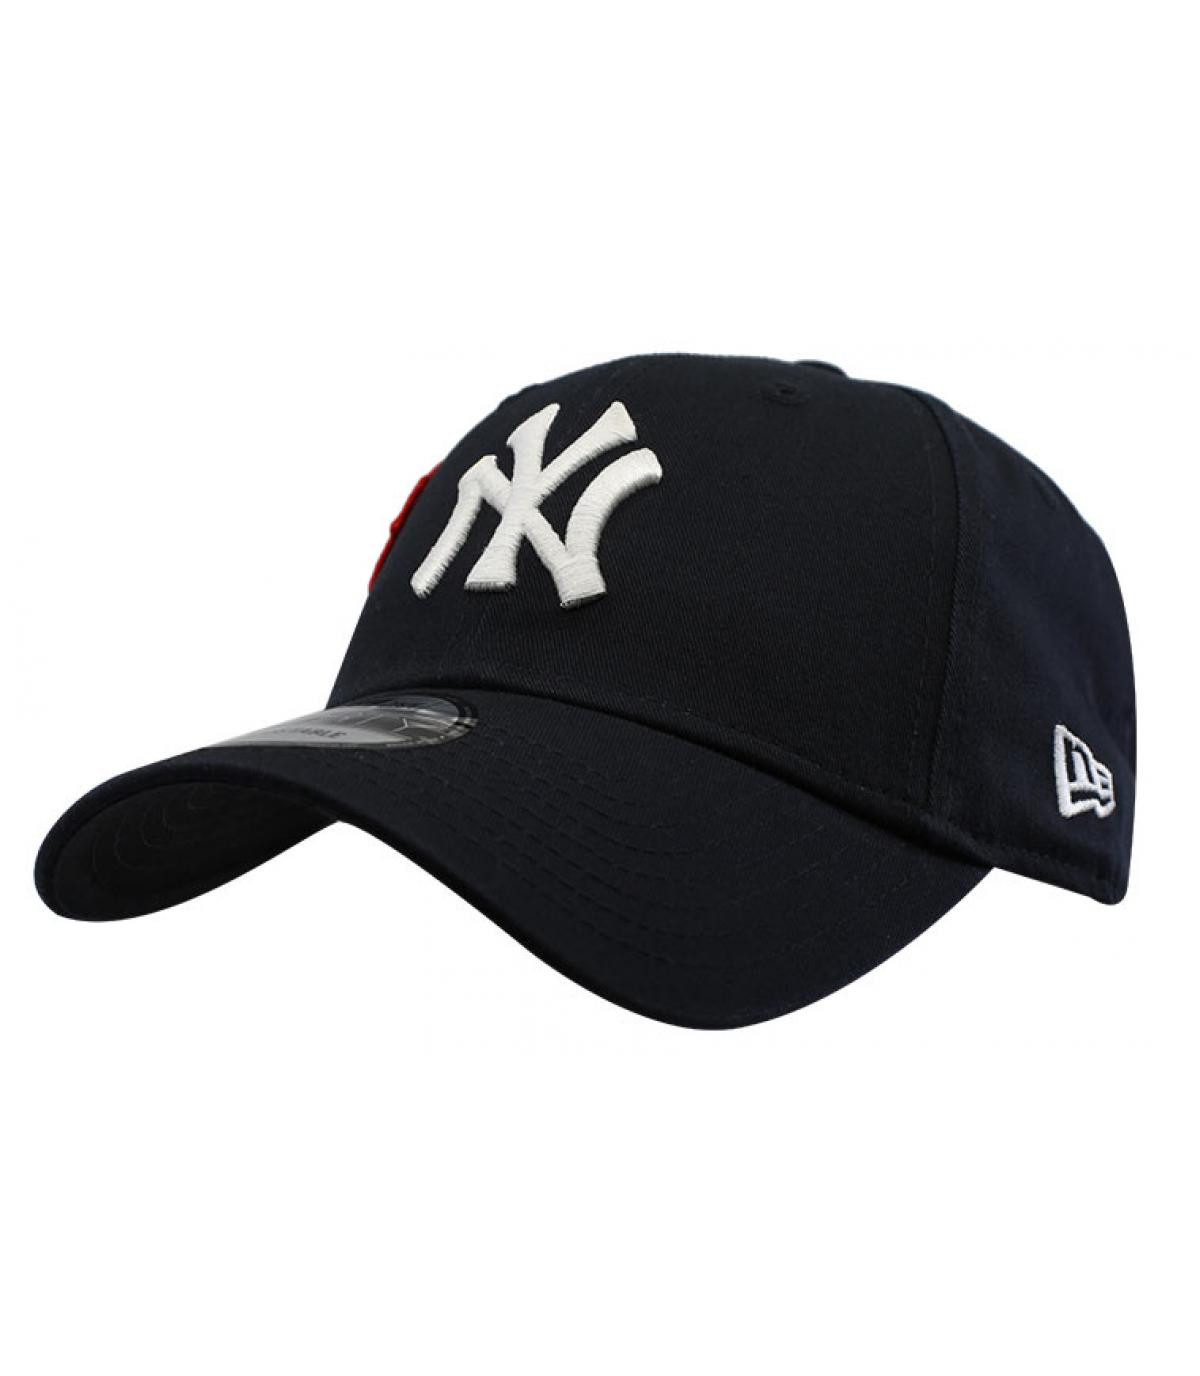 Details Cap Cooperstown Patched 9Forty NY - Abbildung 2